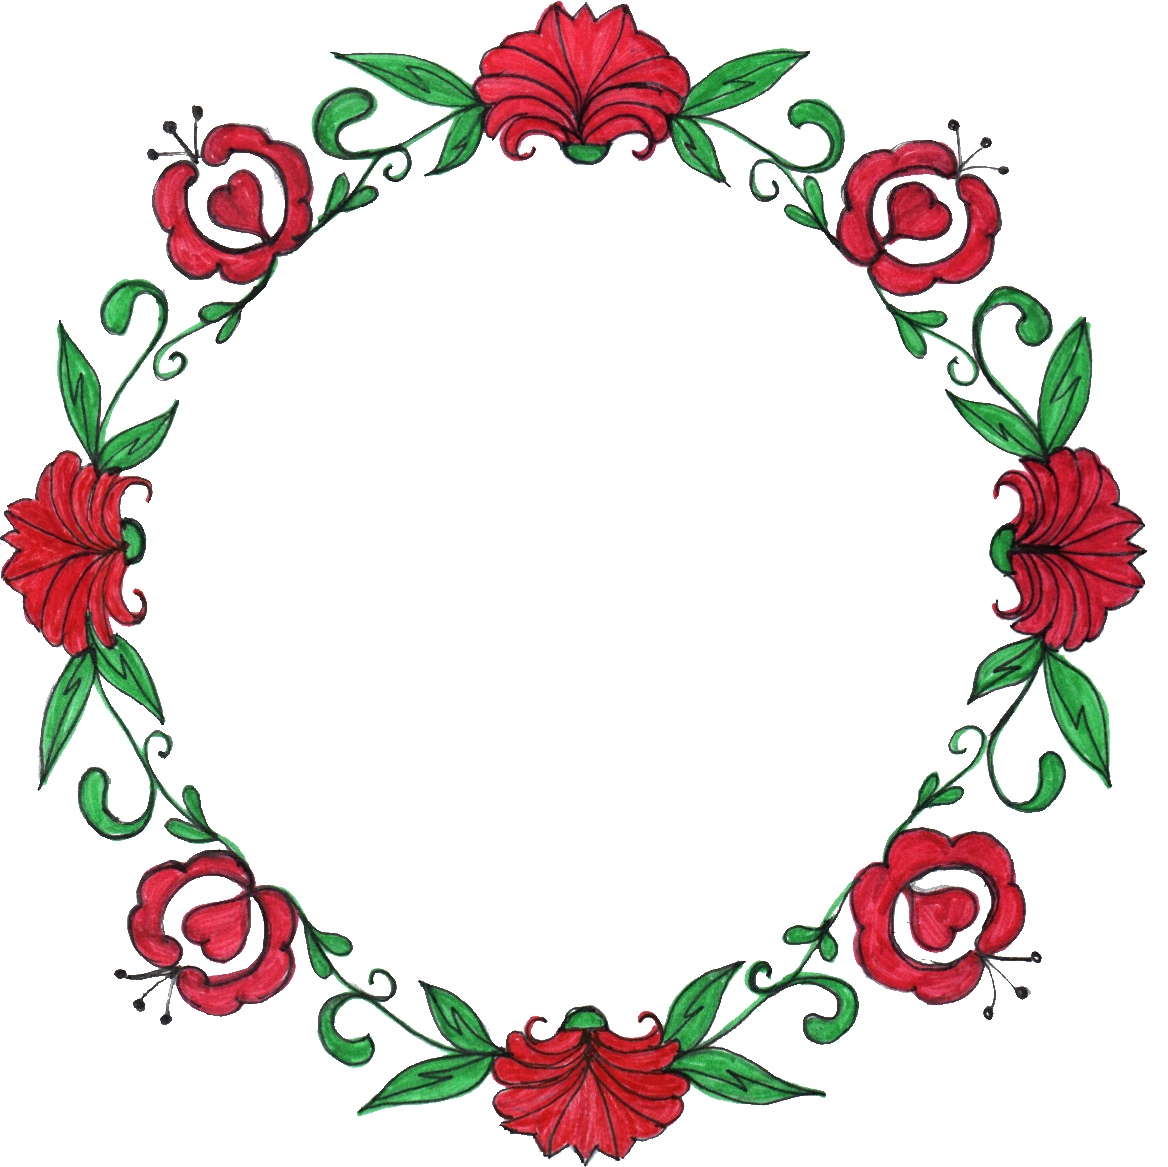 1168x1167 Flower Circle Image Black And White Download